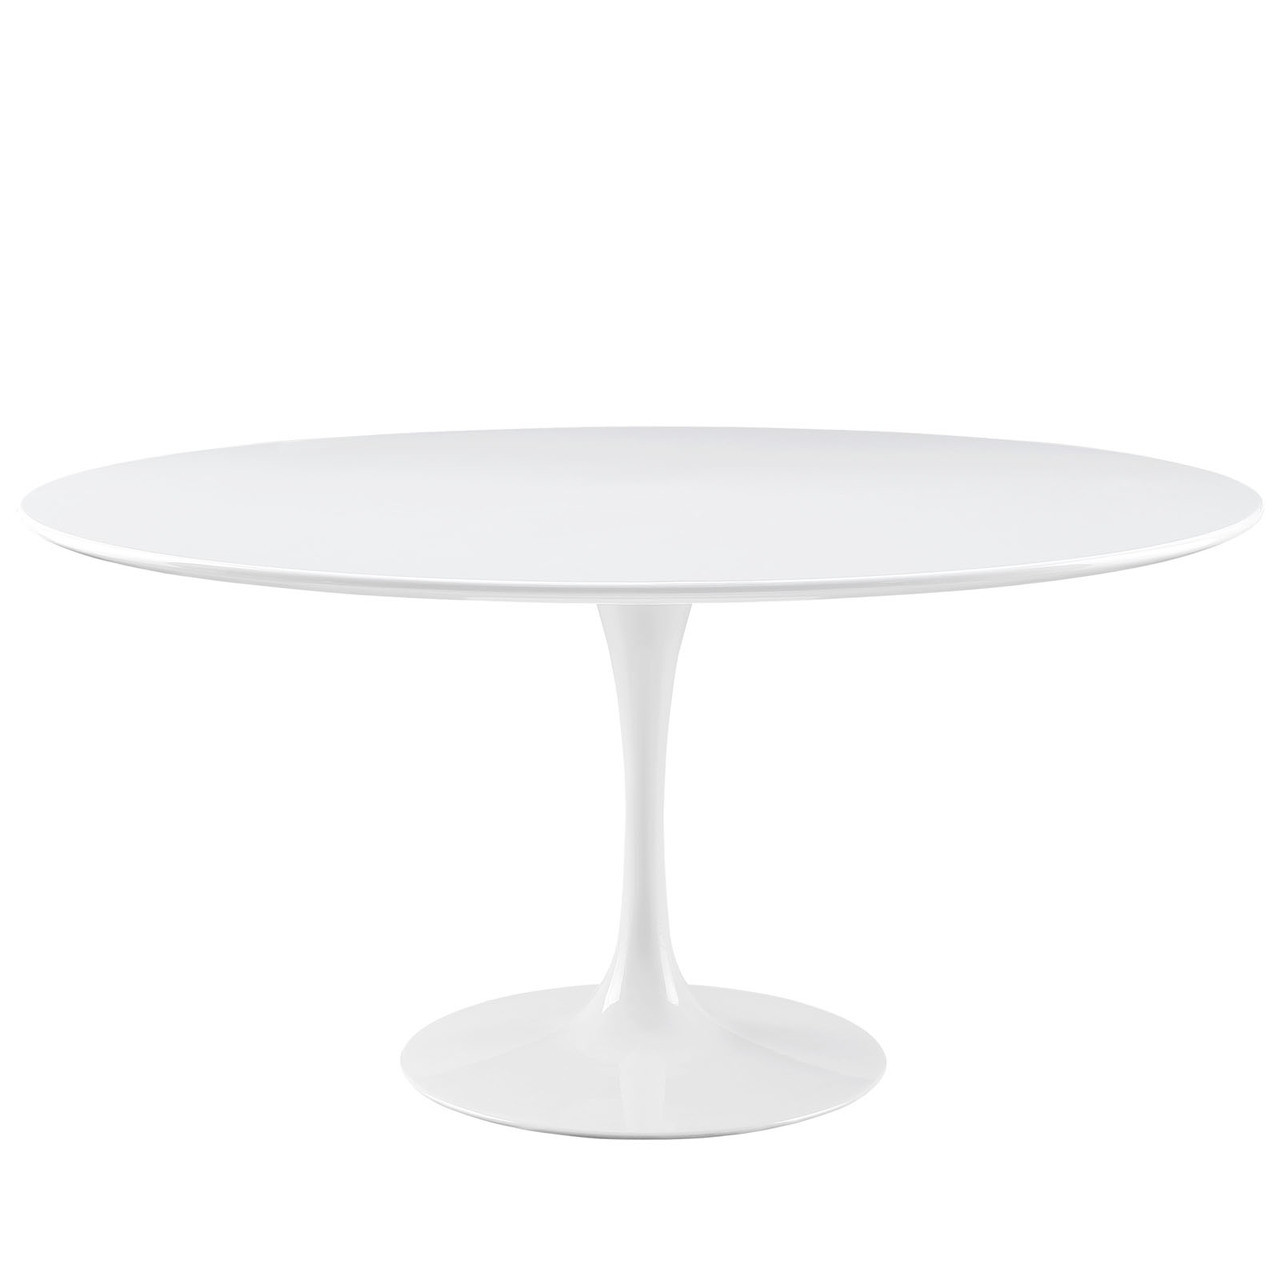 "Lippa 60"" Round Wood Top Dining Table"